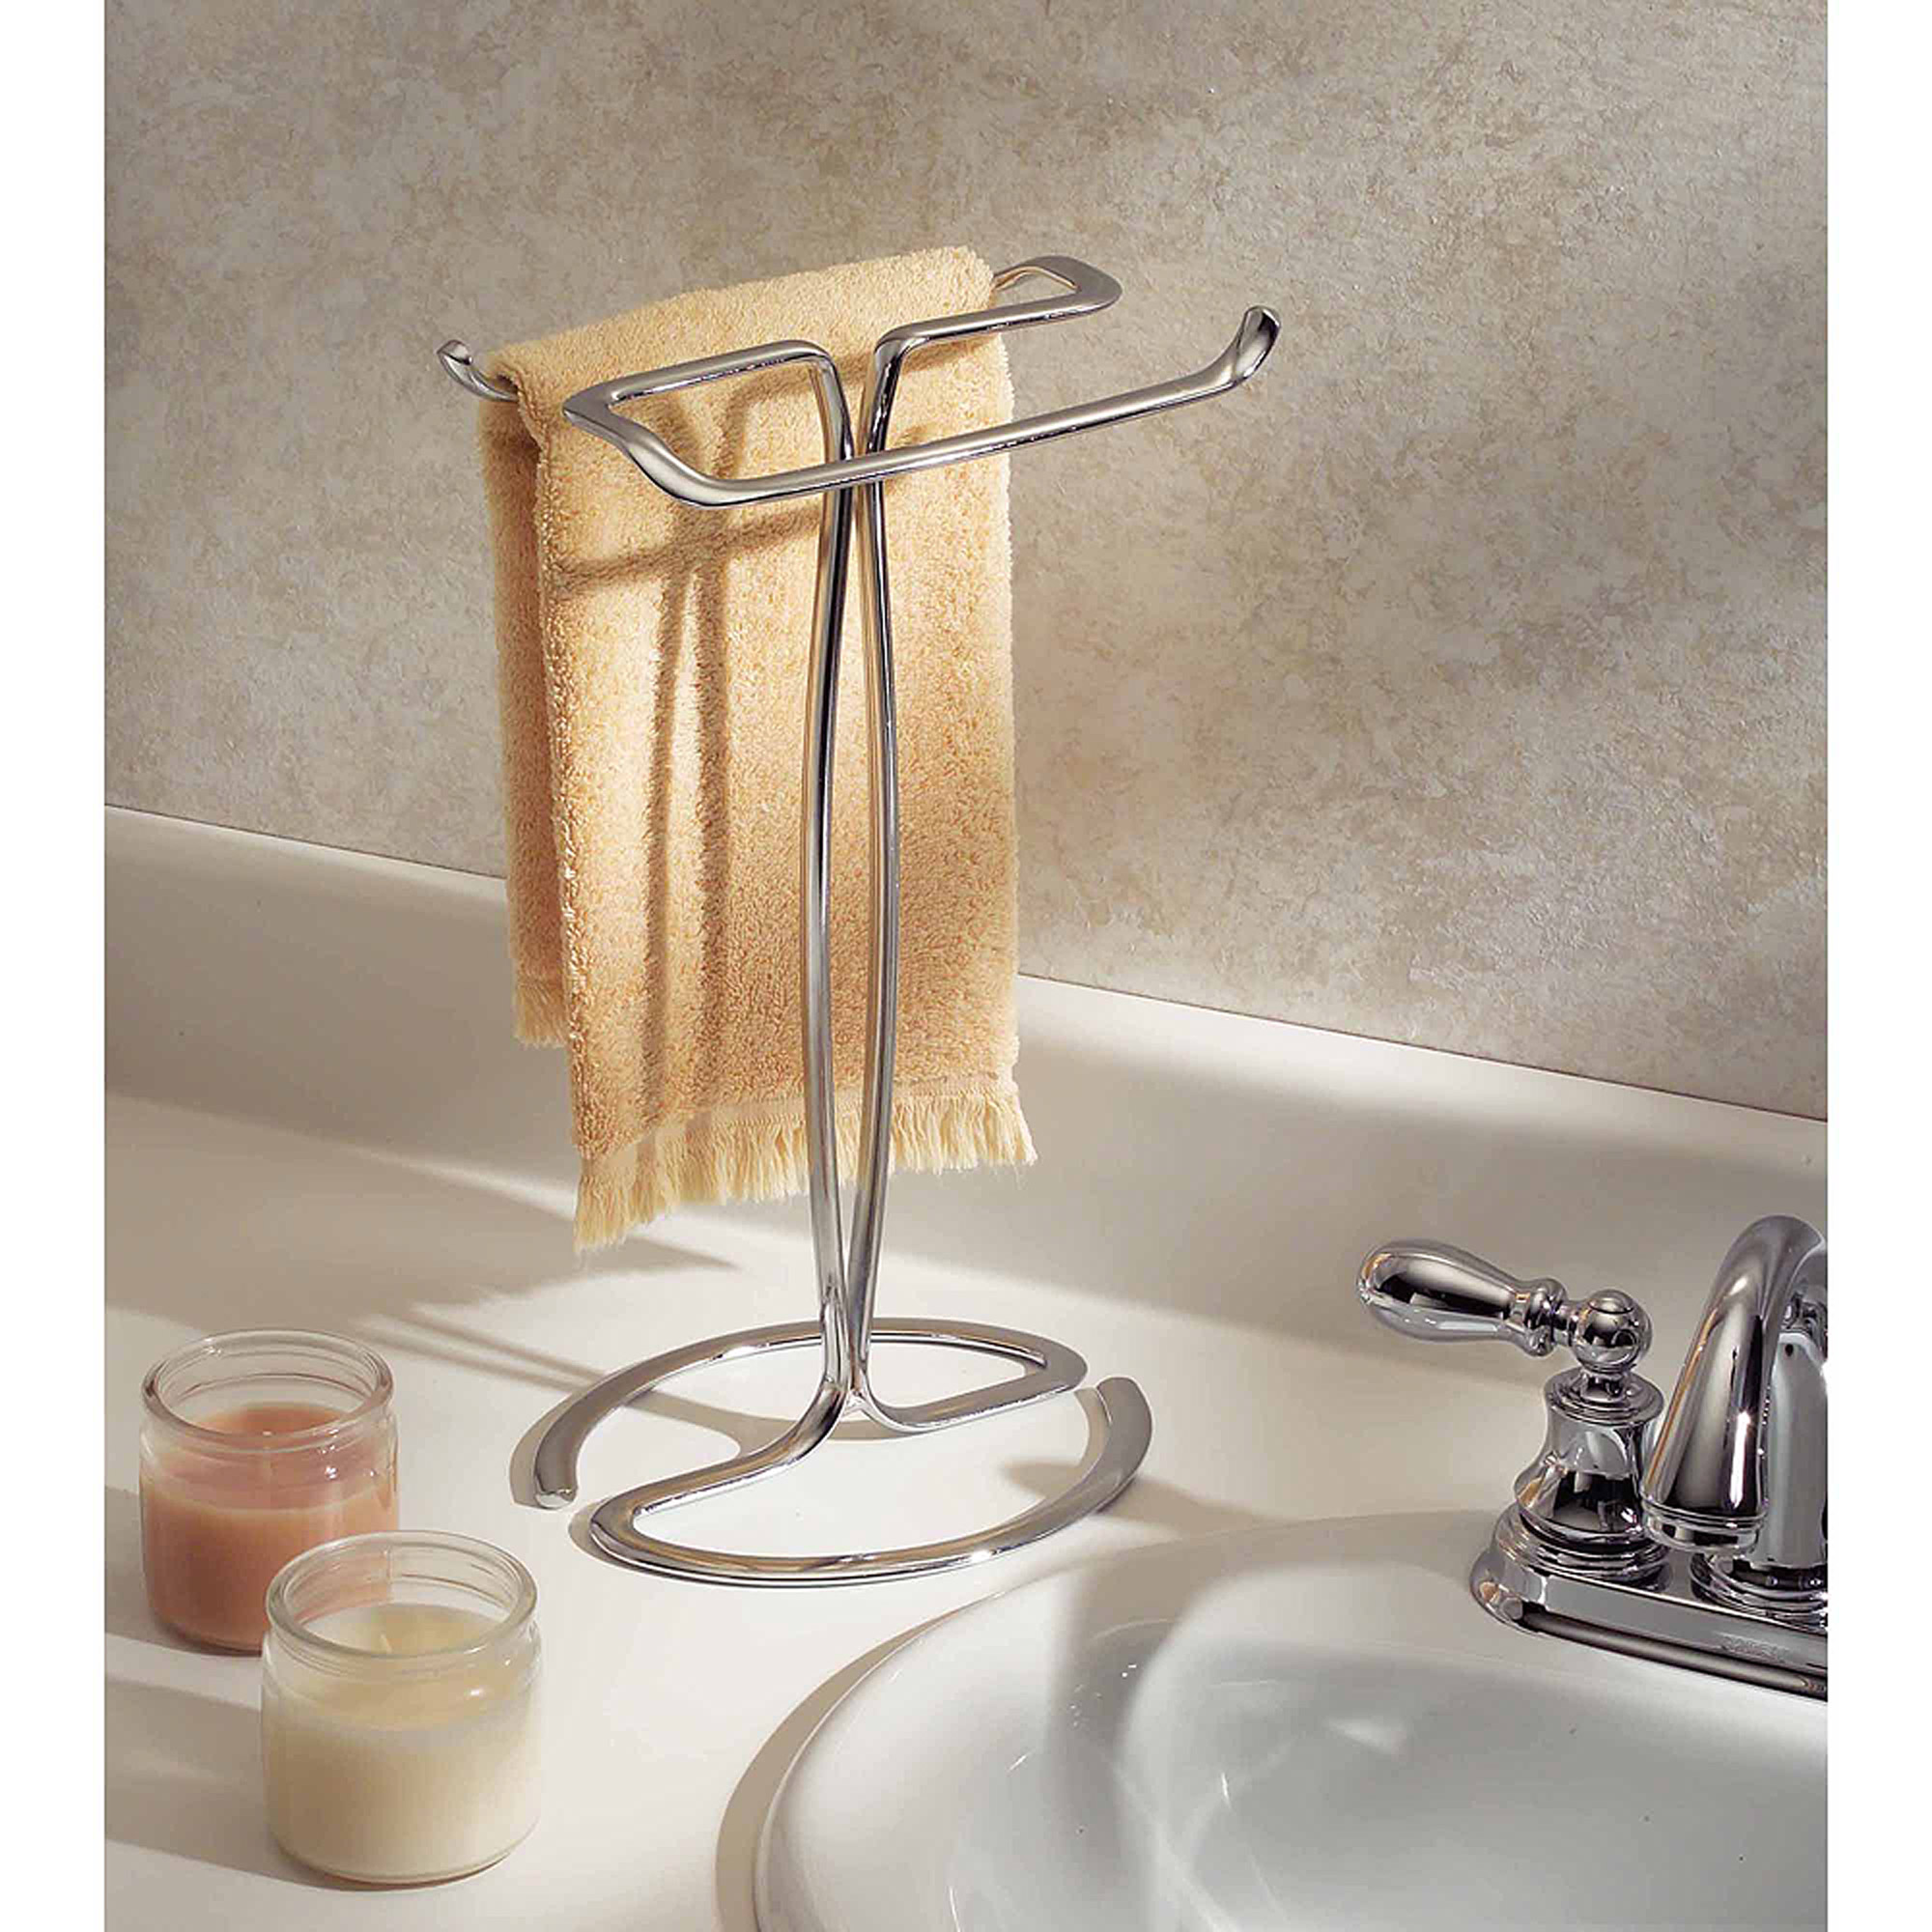 interdesign axis fingertip towel holder